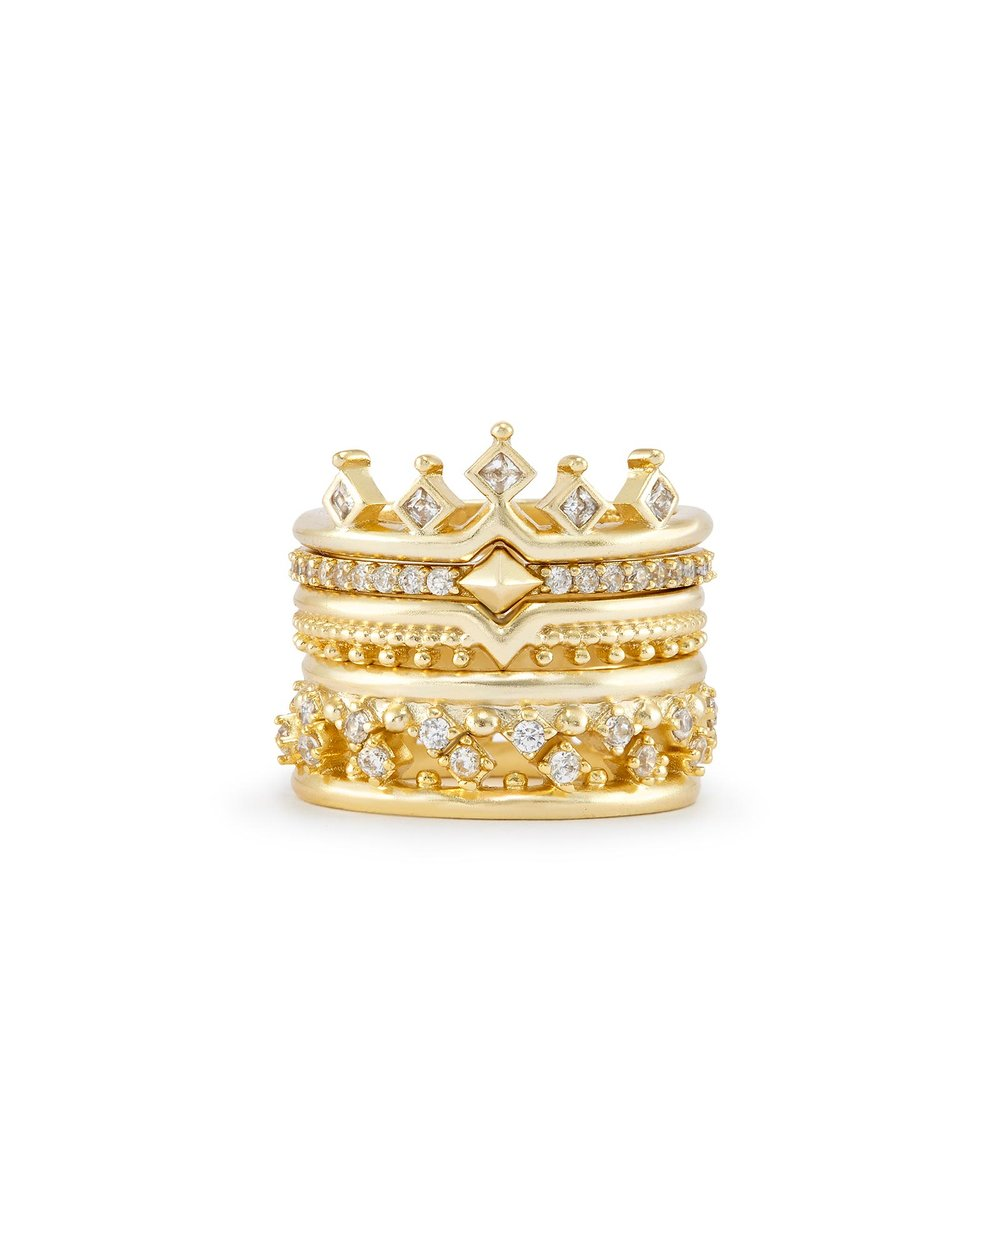 kendra-scott-violette-stackable-ring-set-in-gold_00_default_lg.jpg